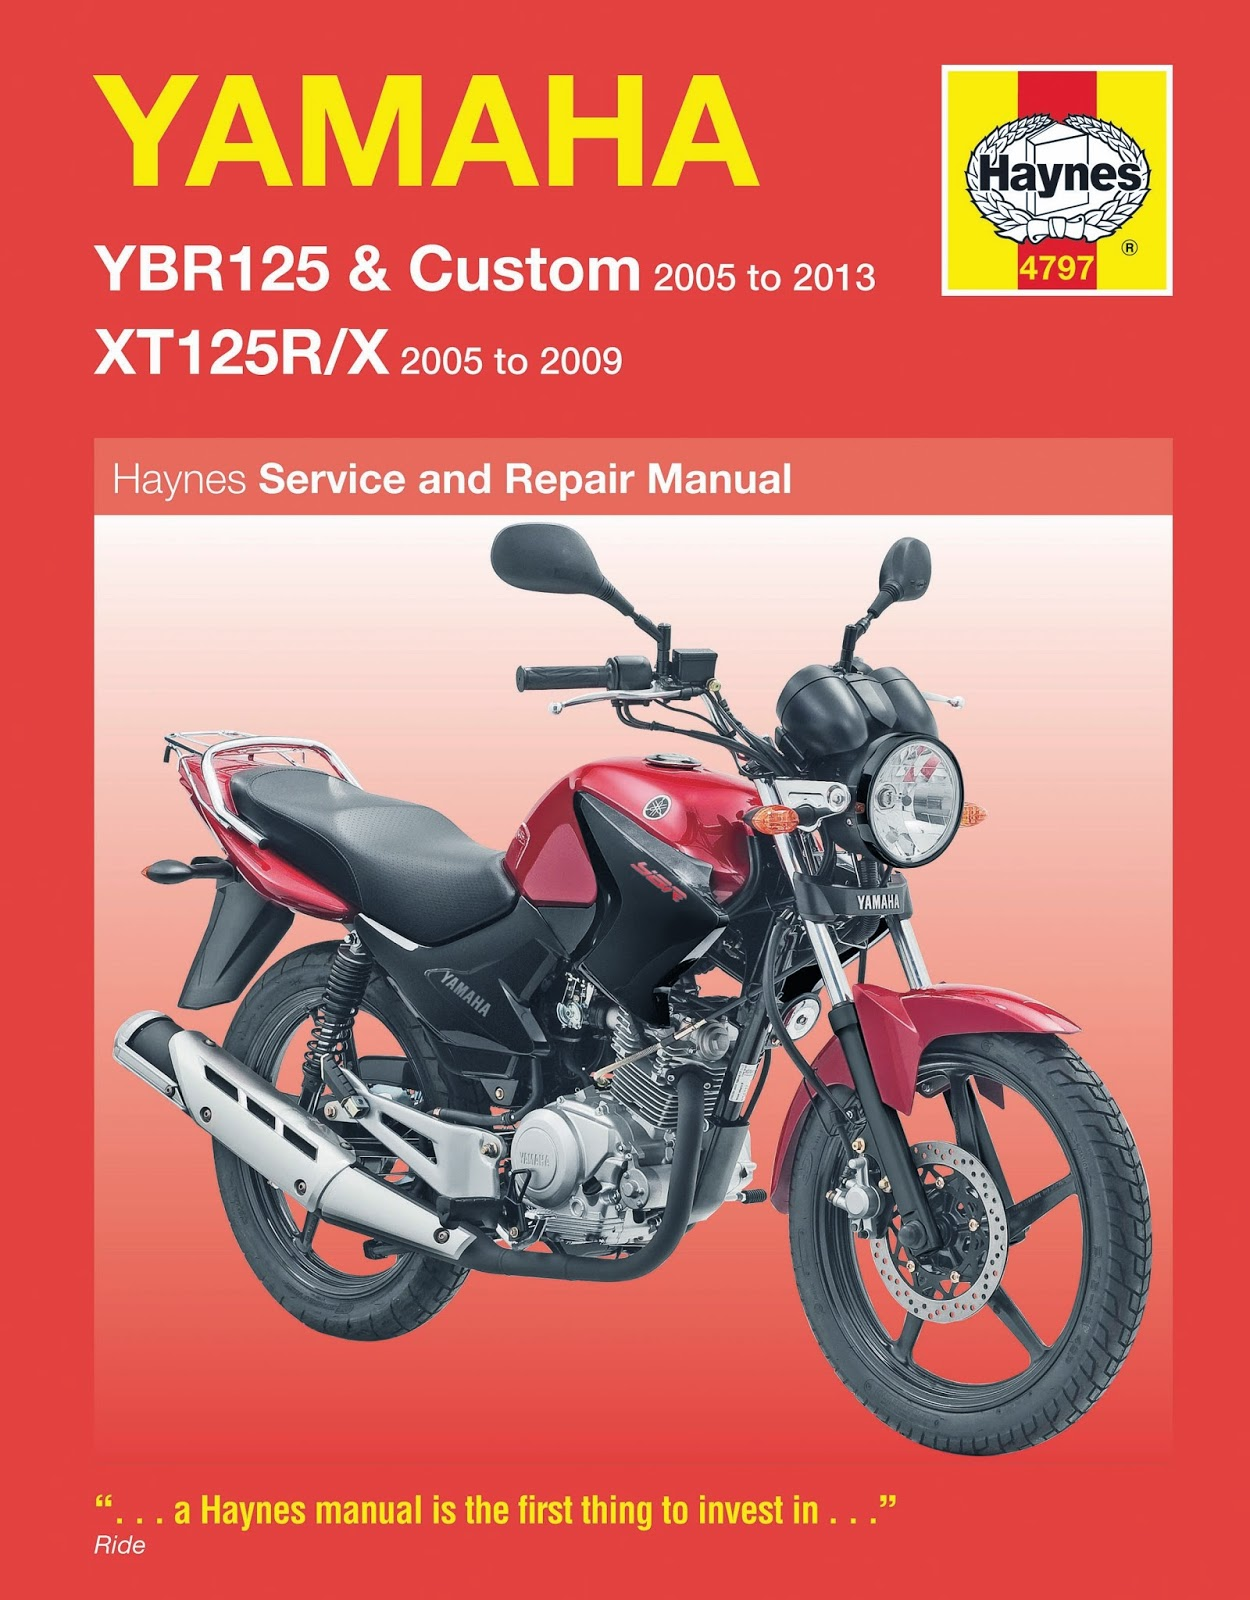 medium resolution of yamaha ybr 125 owner blog yamaha ybr 125 electrical system yamaha ybr 125 fuse box location